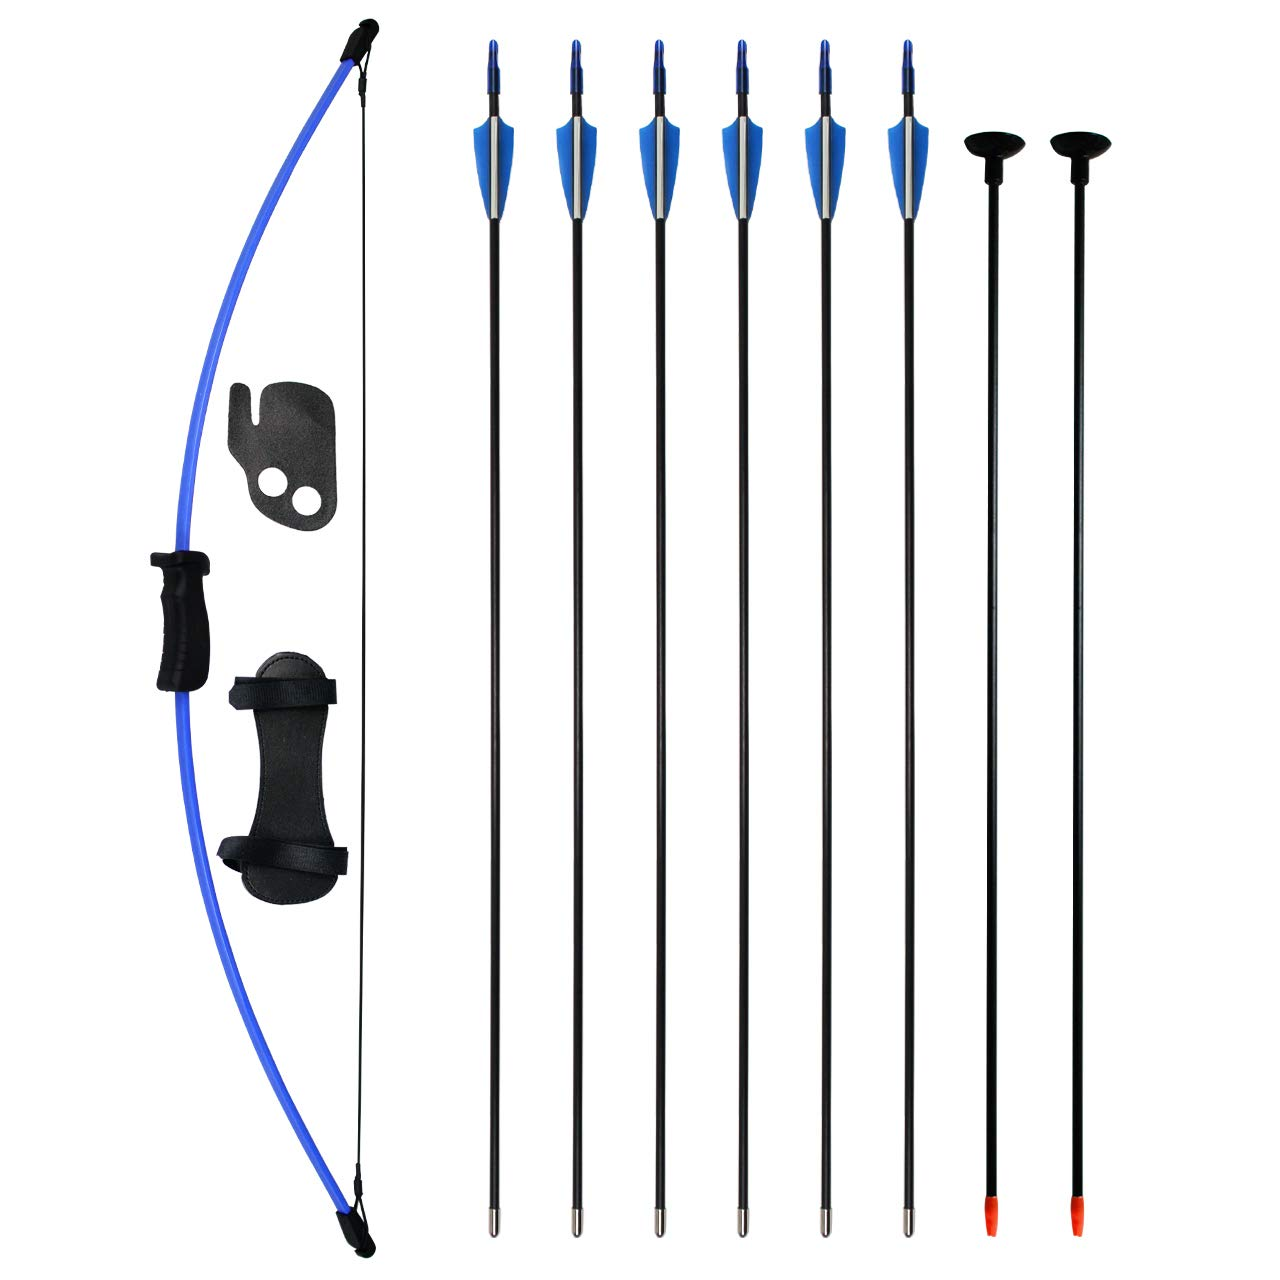 SinoArt Bow and Arrow Set for Teens Outdoor Sports Game Hunting Gift Archery Bow Set with 8 Arrows 16 Lb (Blue)